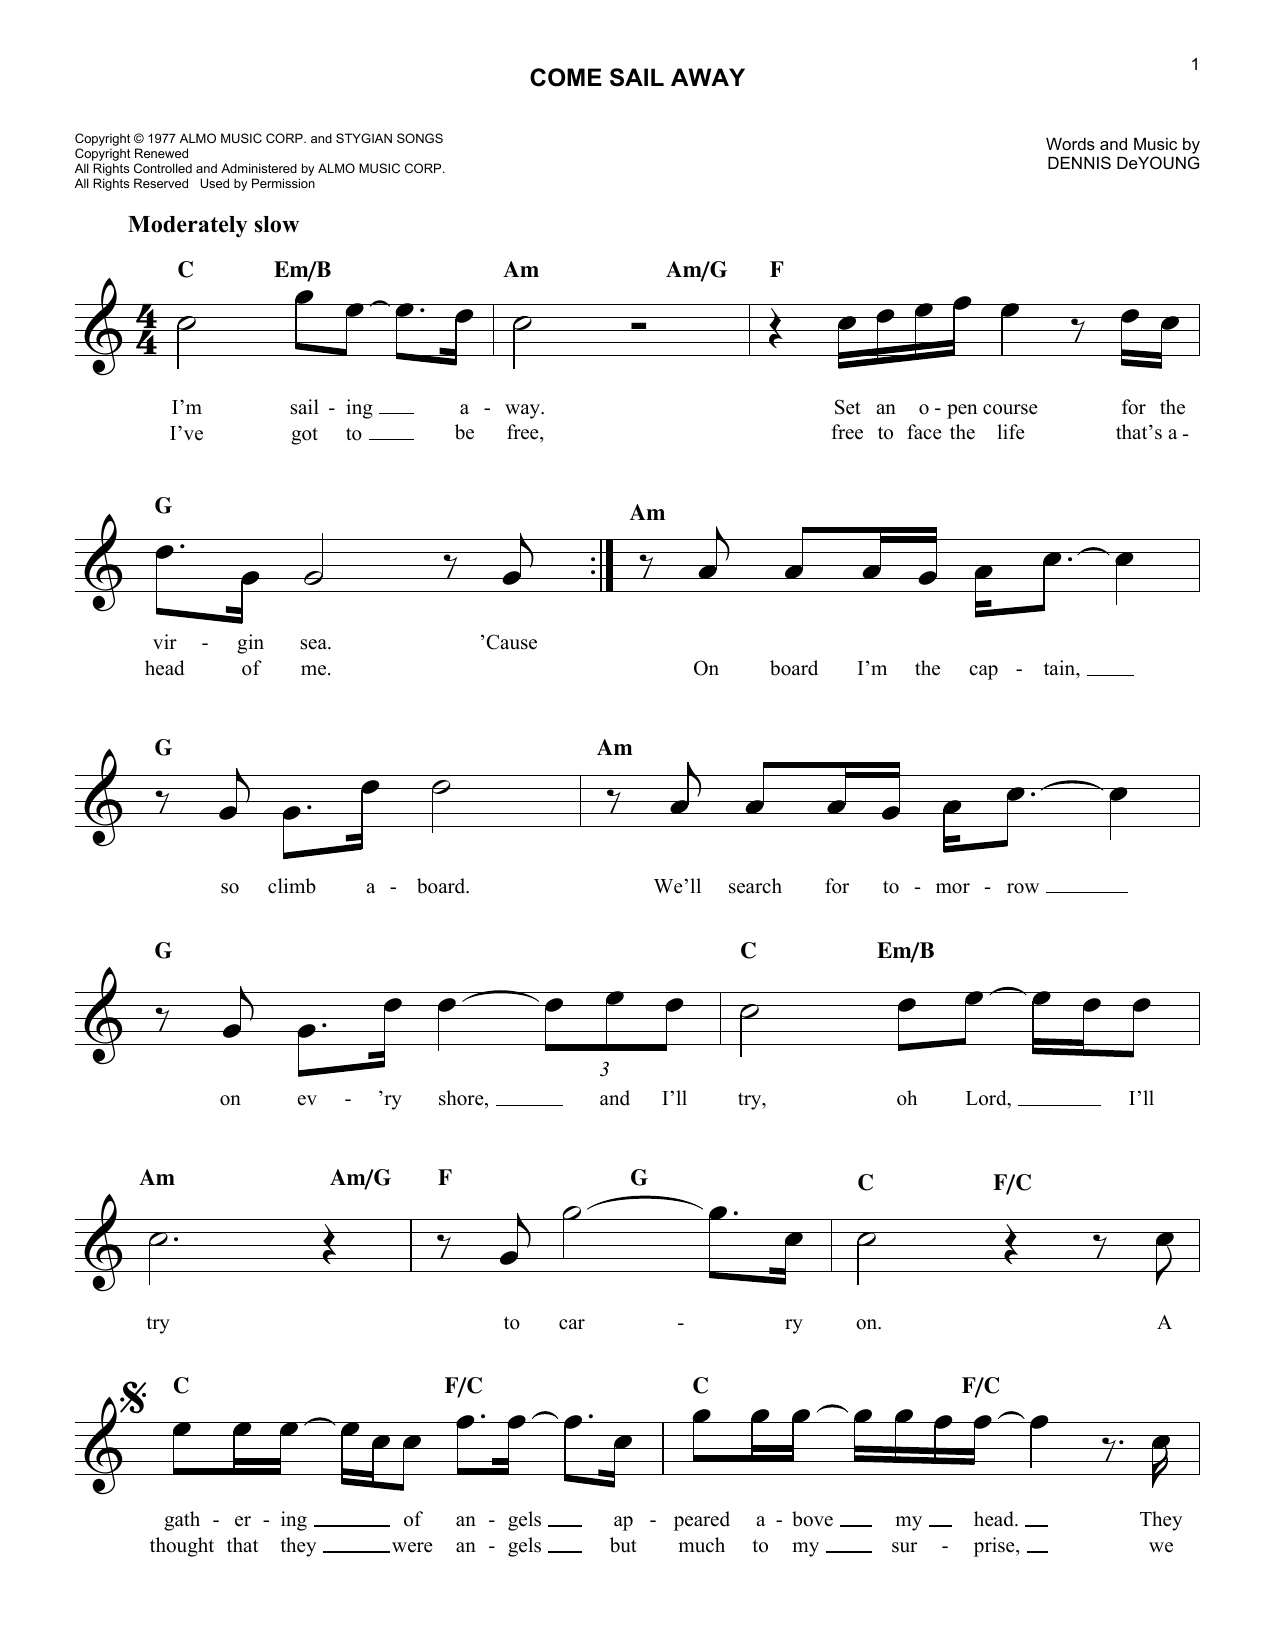 Come Sail Away Chords By Styx Melody Line Lyrics Chords 186022